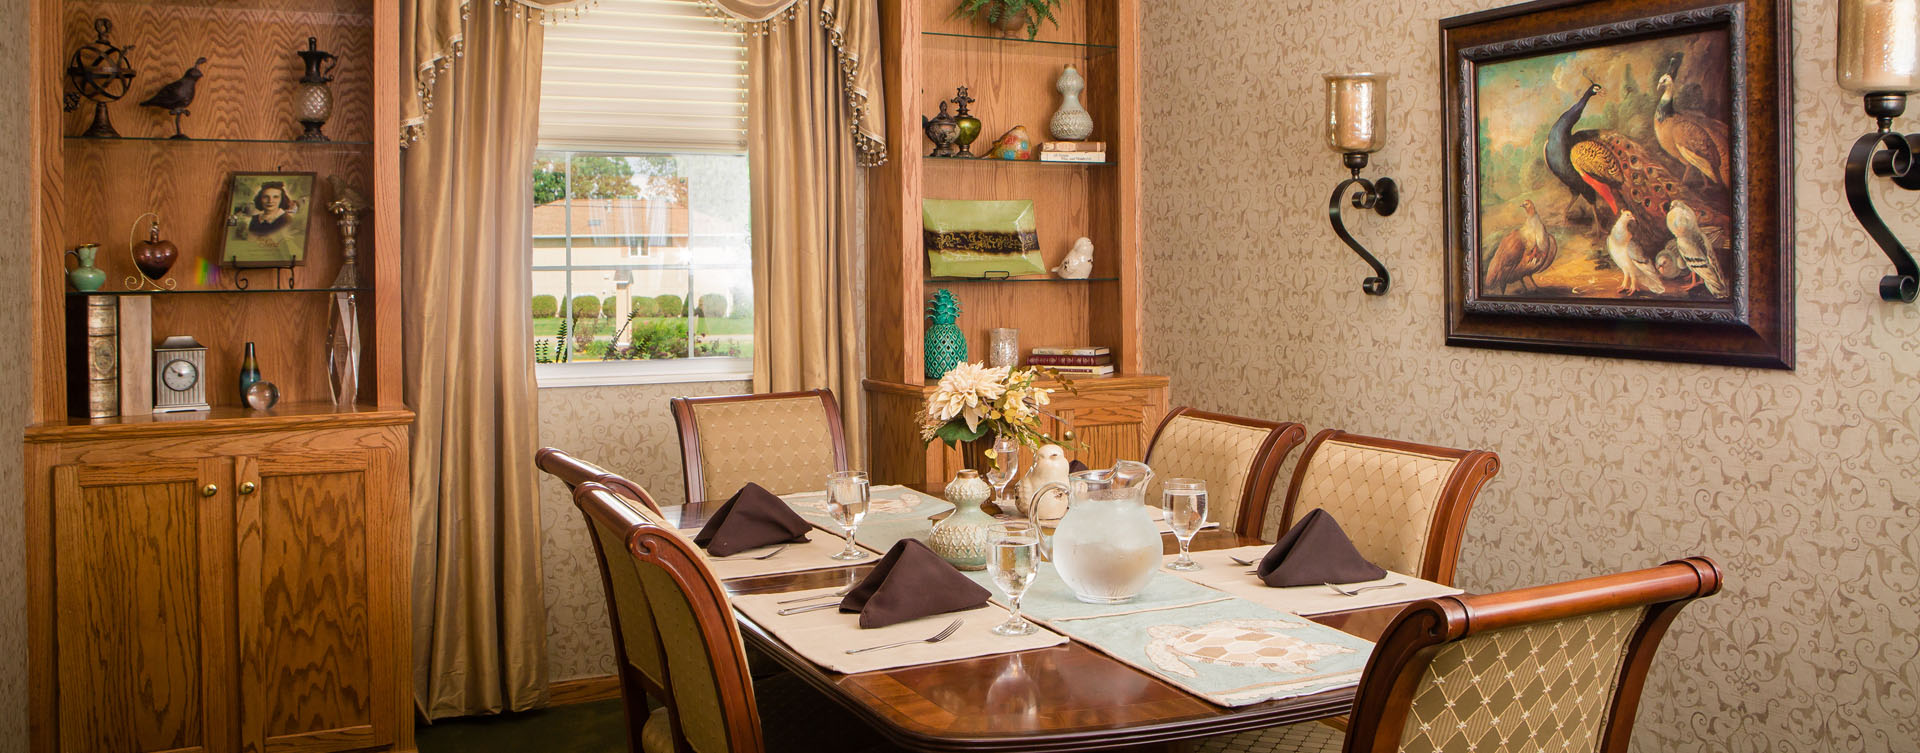 Food is best when shared with family and friends in the private dining room at Bickford of Macomb